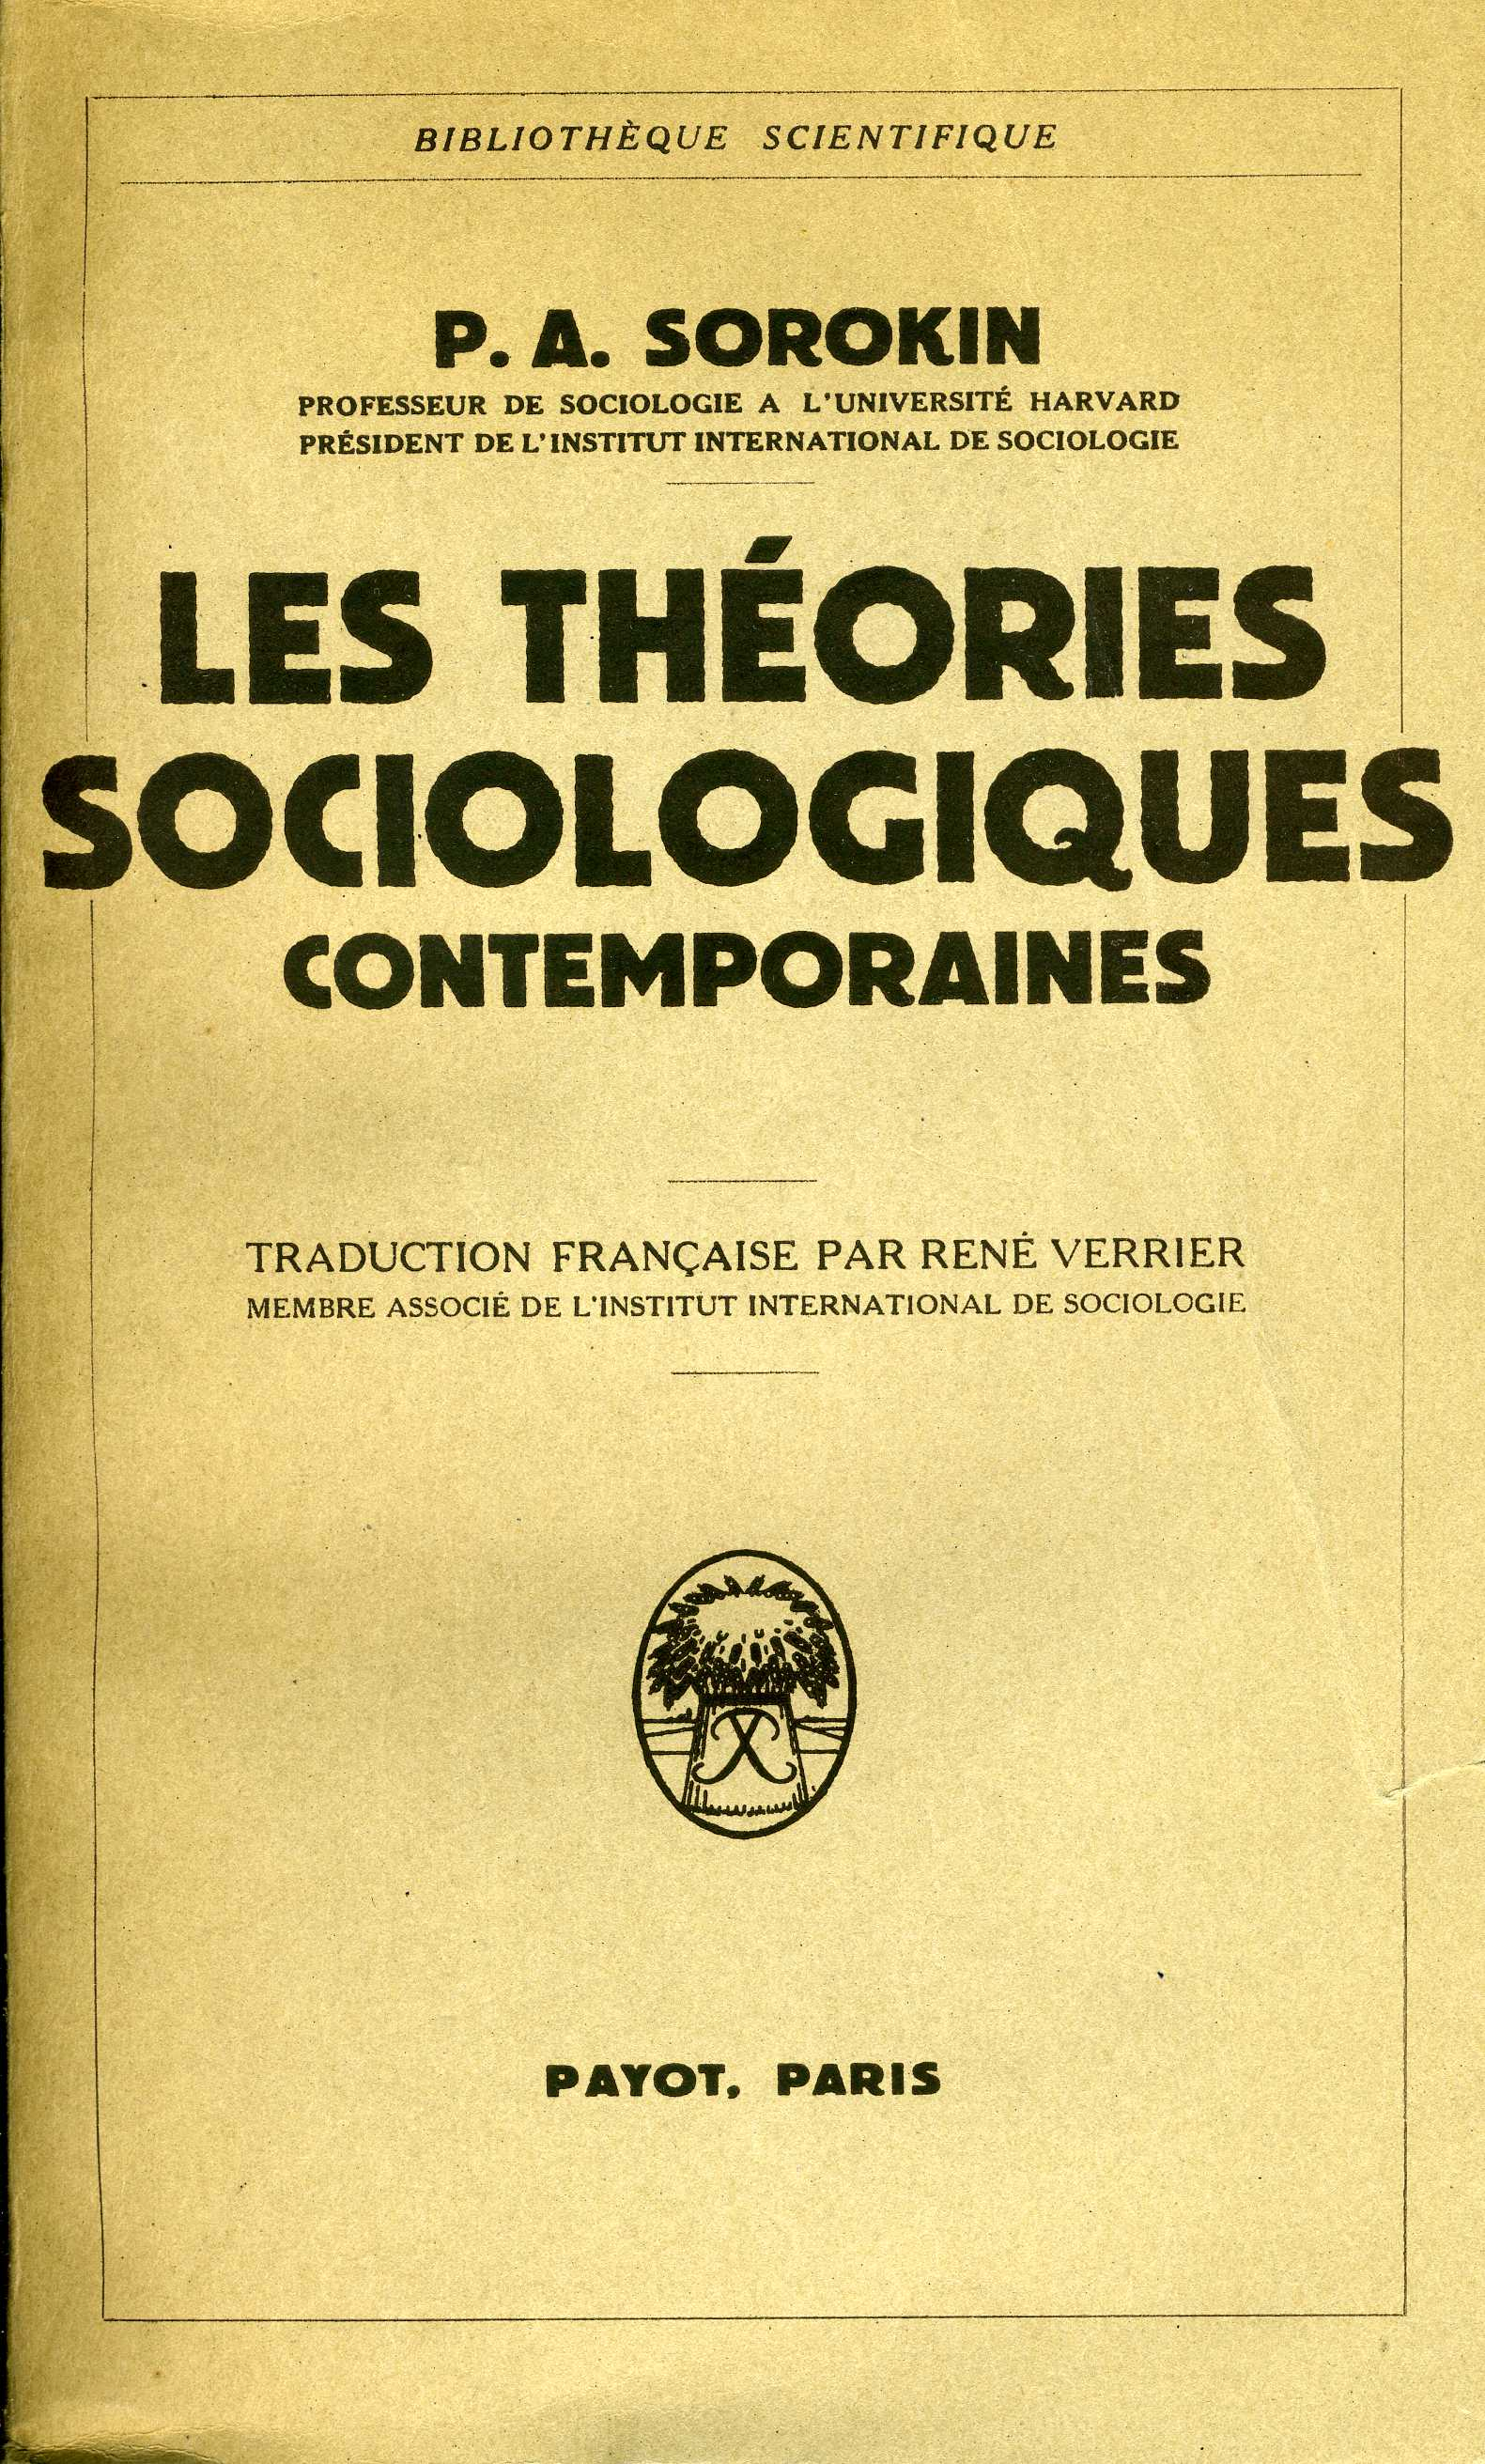 Contemporary Soci Theories_France066.jpg